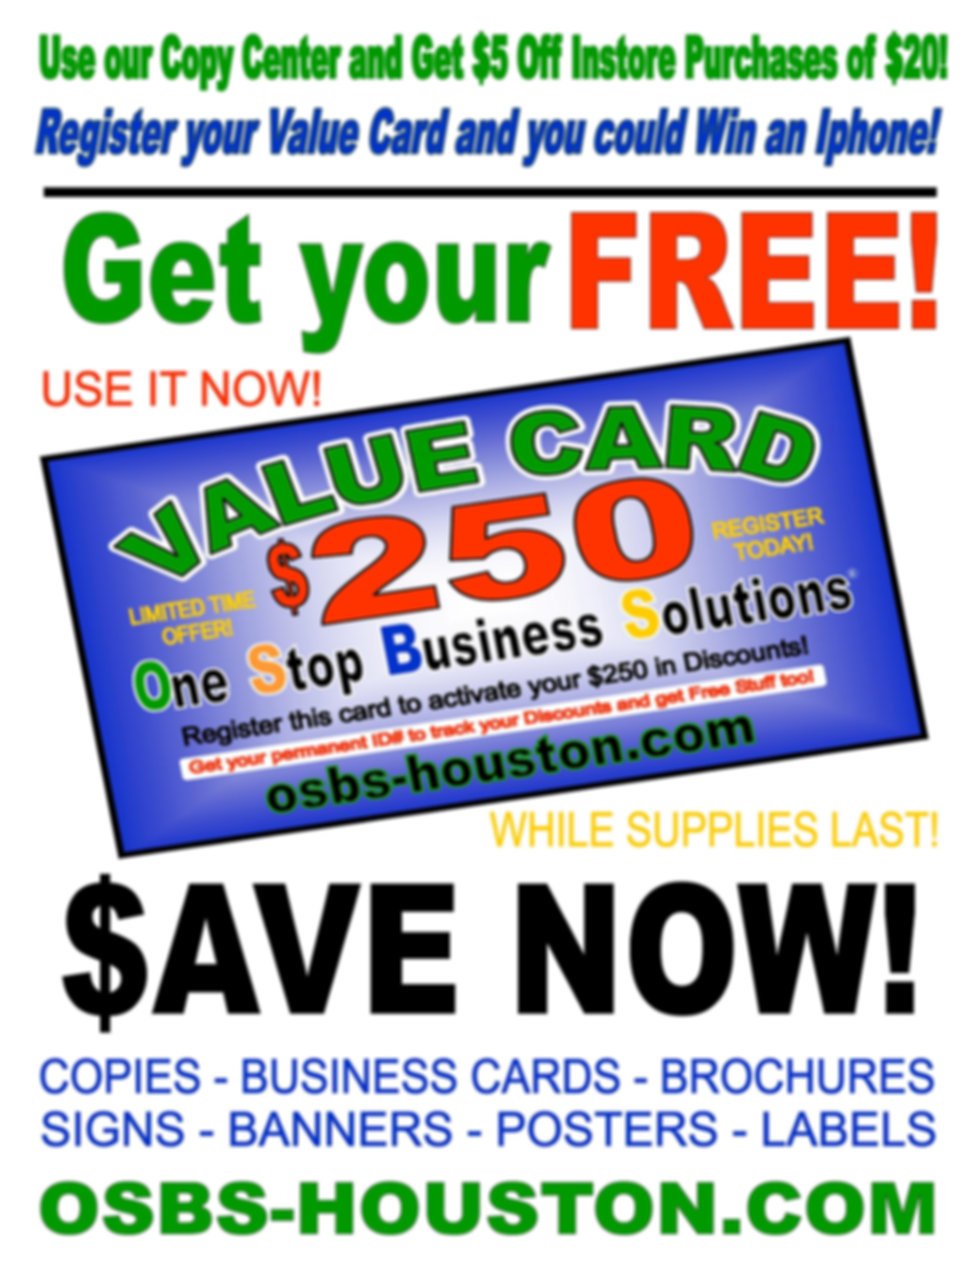 DISCOUNT COPIES DIGITAL PRINTING BOOKS BUSINESS CARDS SIGNS BANNERS FORMS POSTERS